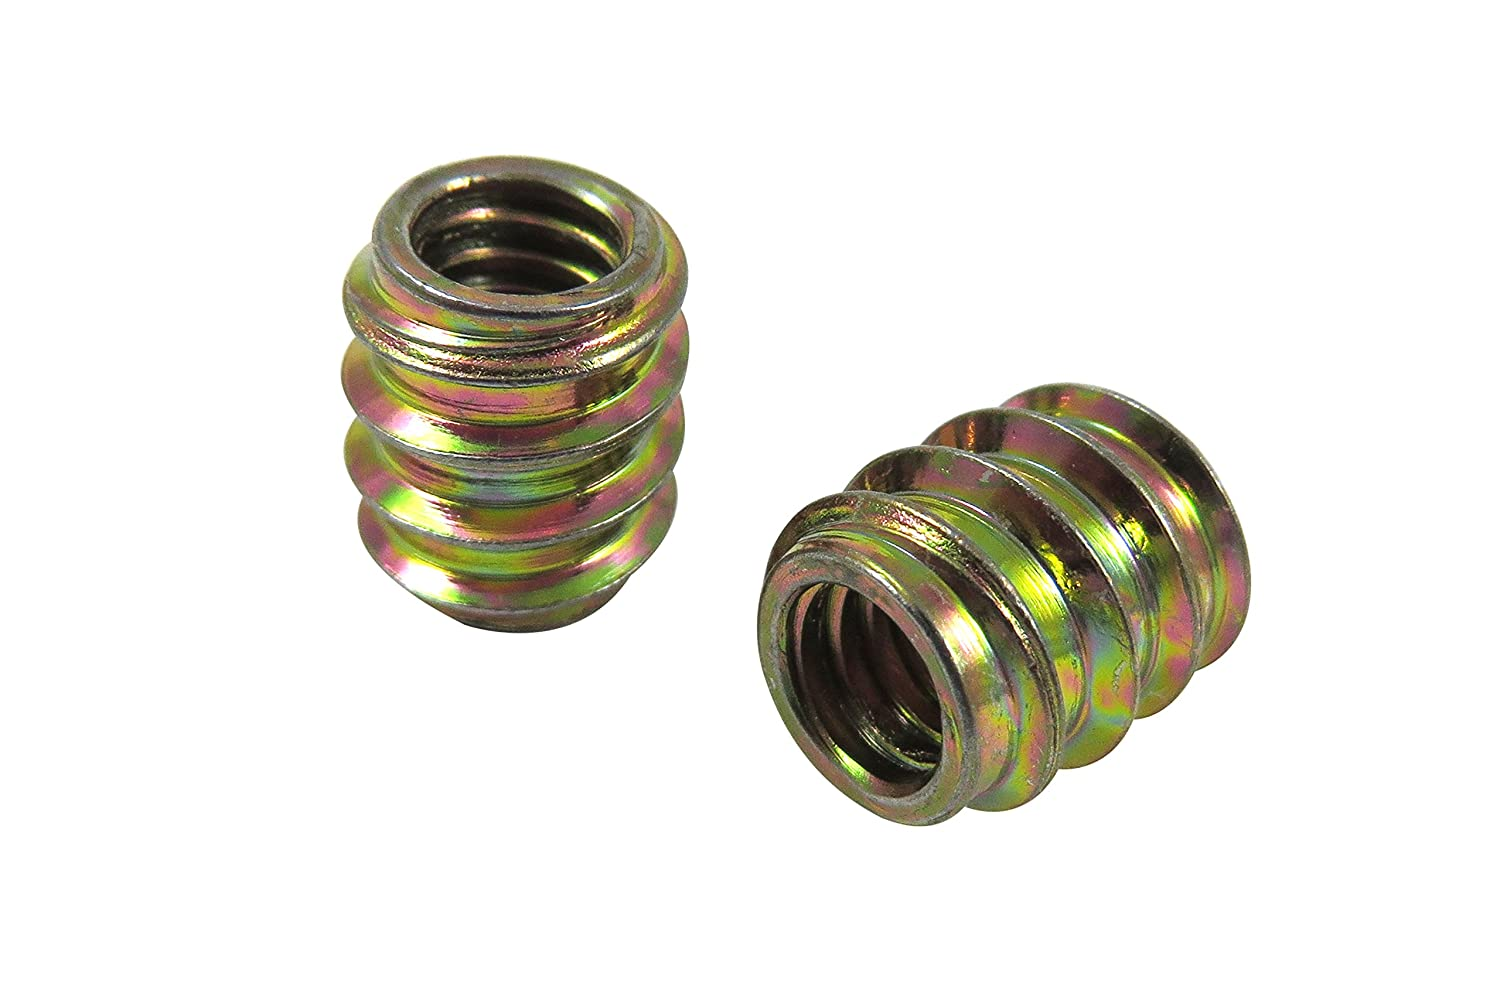 Taytools 468594 25 Pack 5/16-18 Threaded Inserts, Allow Steel, Zinc Plated, 1/2' Pilot Hole, Overall Length 25/64' 1/2 Pilot Hole Overall Length 25/64 Taylor Toolworks